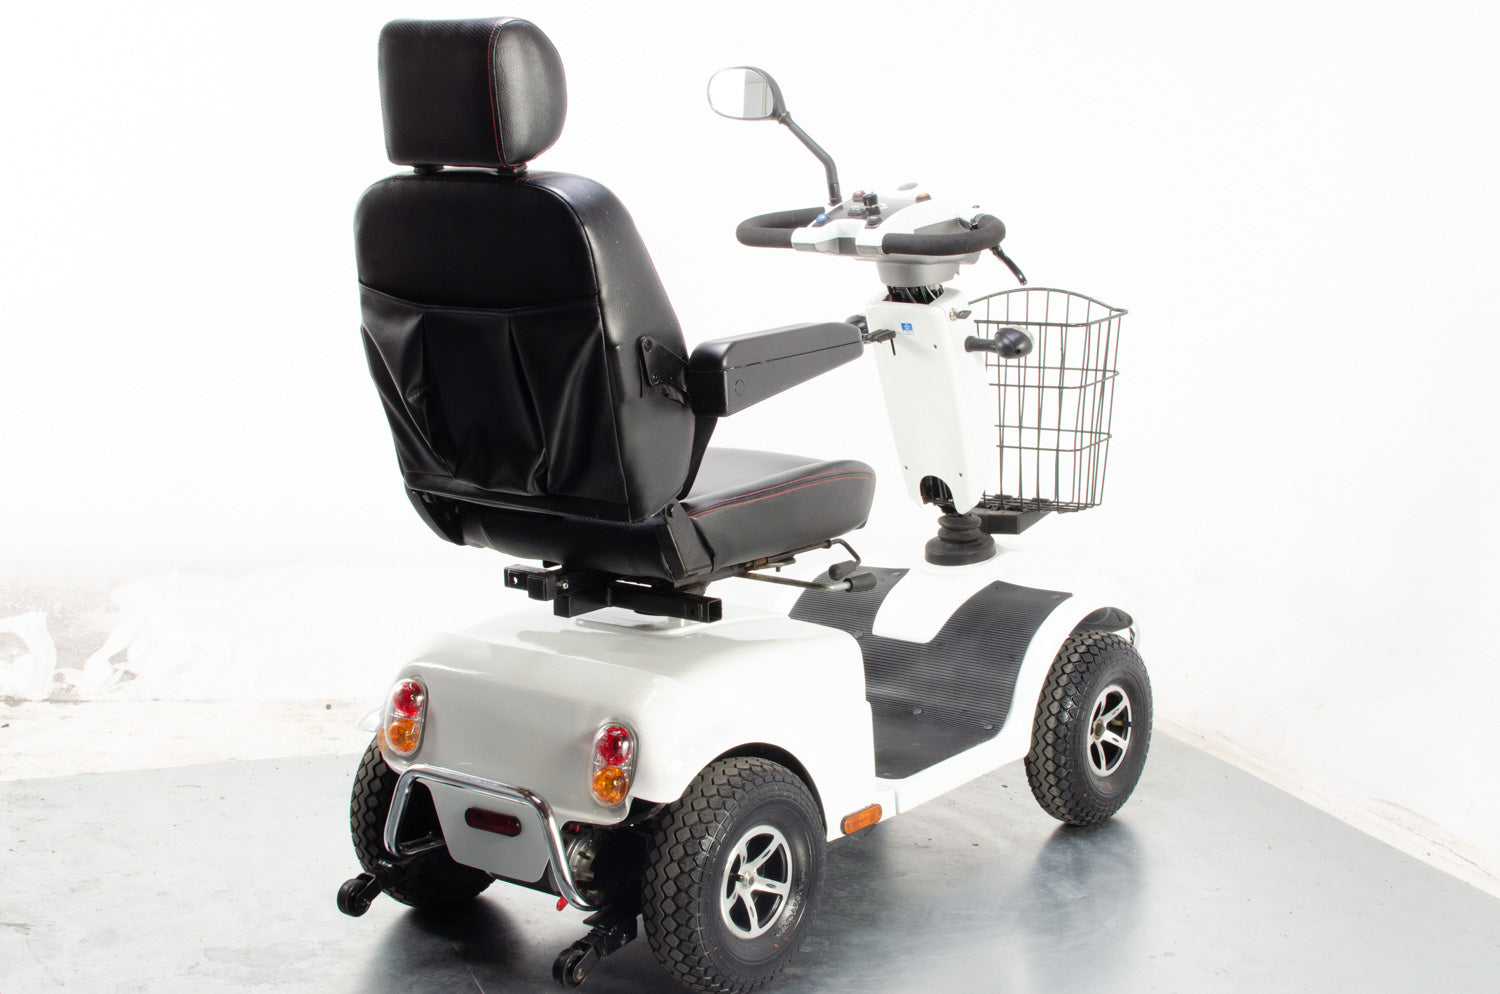 2015 Rascal Pioneer 8mph Large All Terrain Mobility Scooter in White